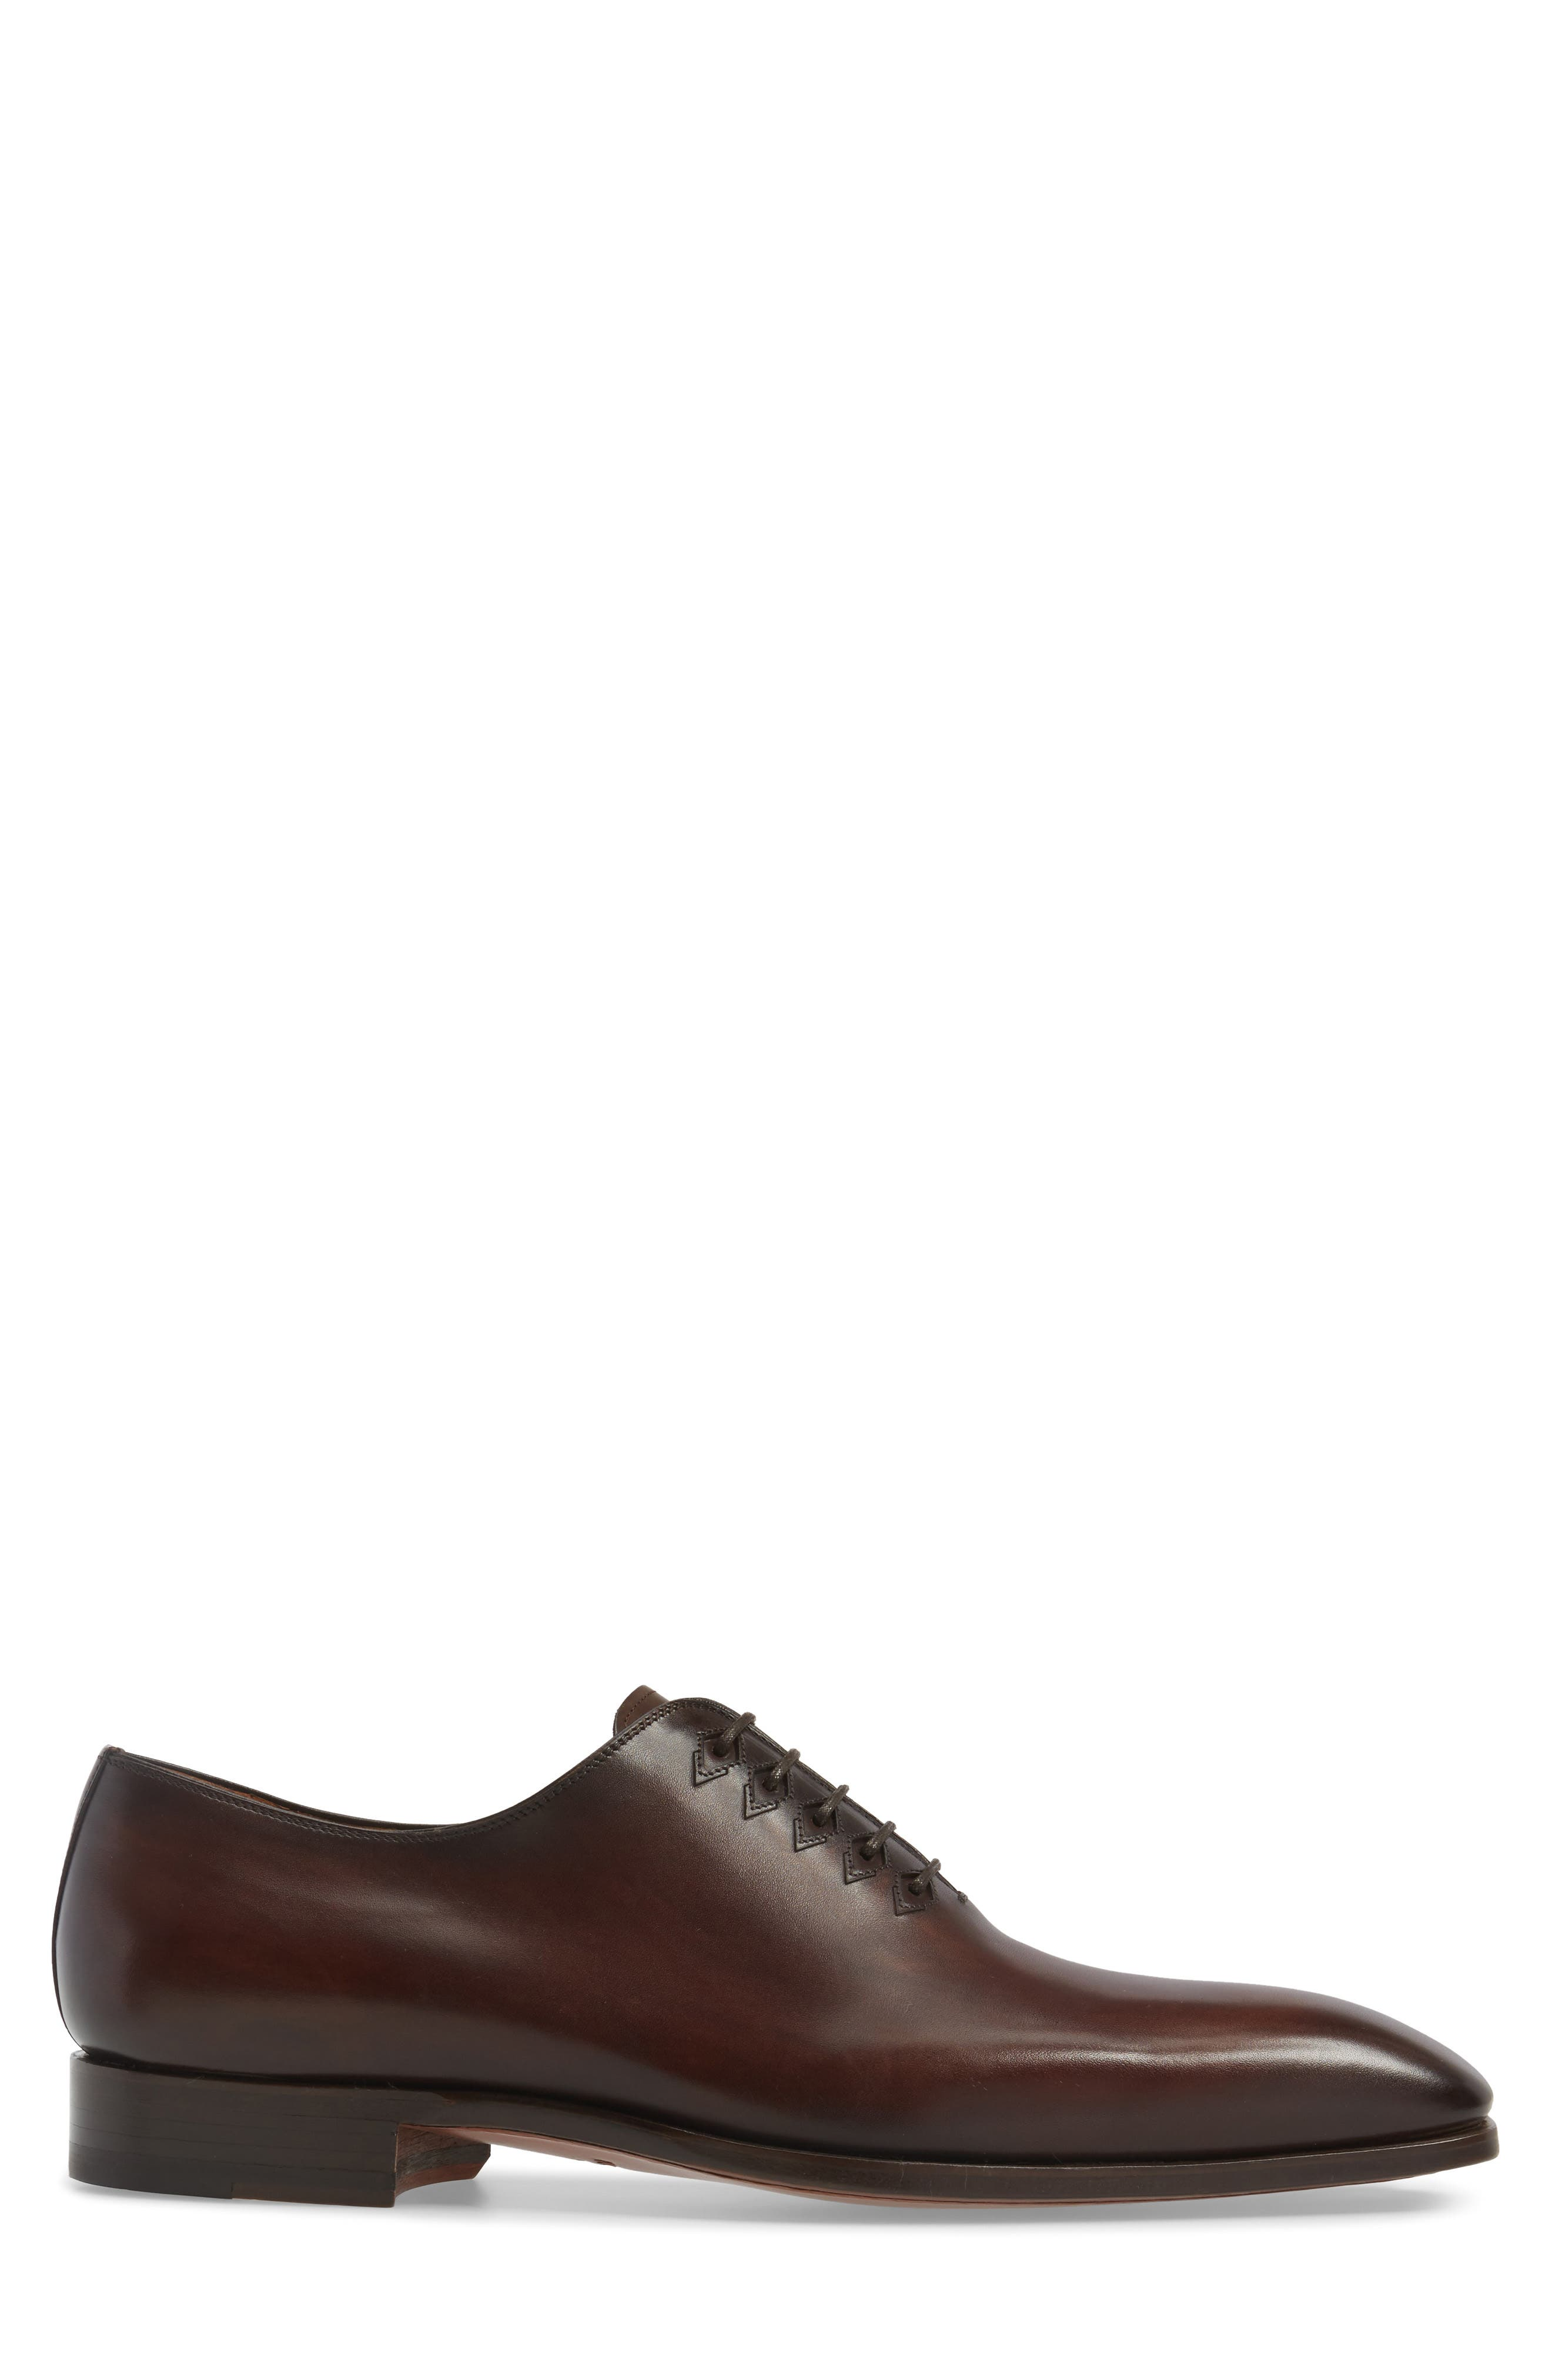 Alternate Image 3  - Magnanni Rioja Wholecut Oxford (Men)